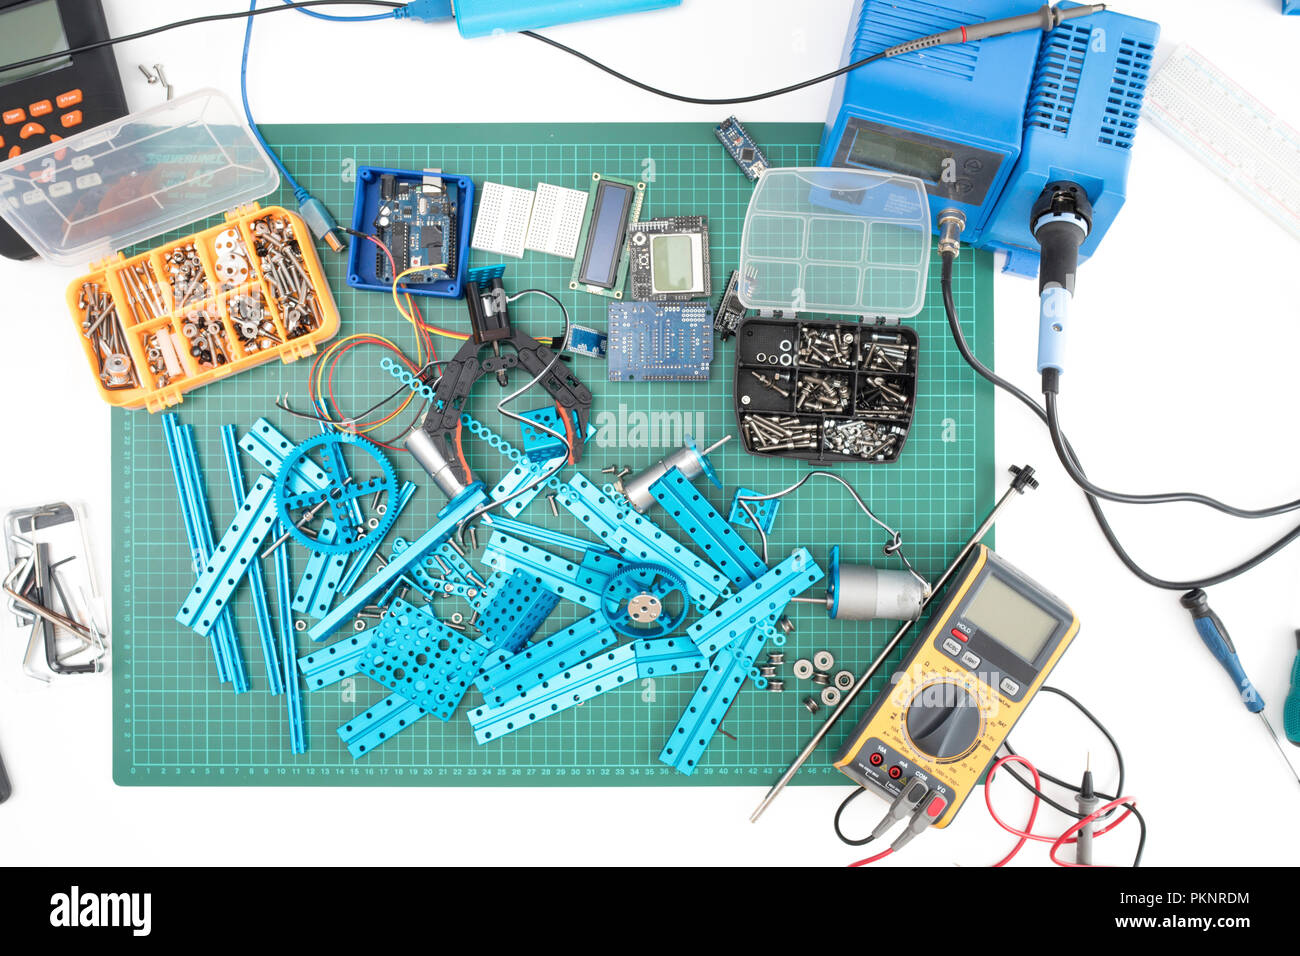 Electrical engineering, conceptual image. - Stock Image